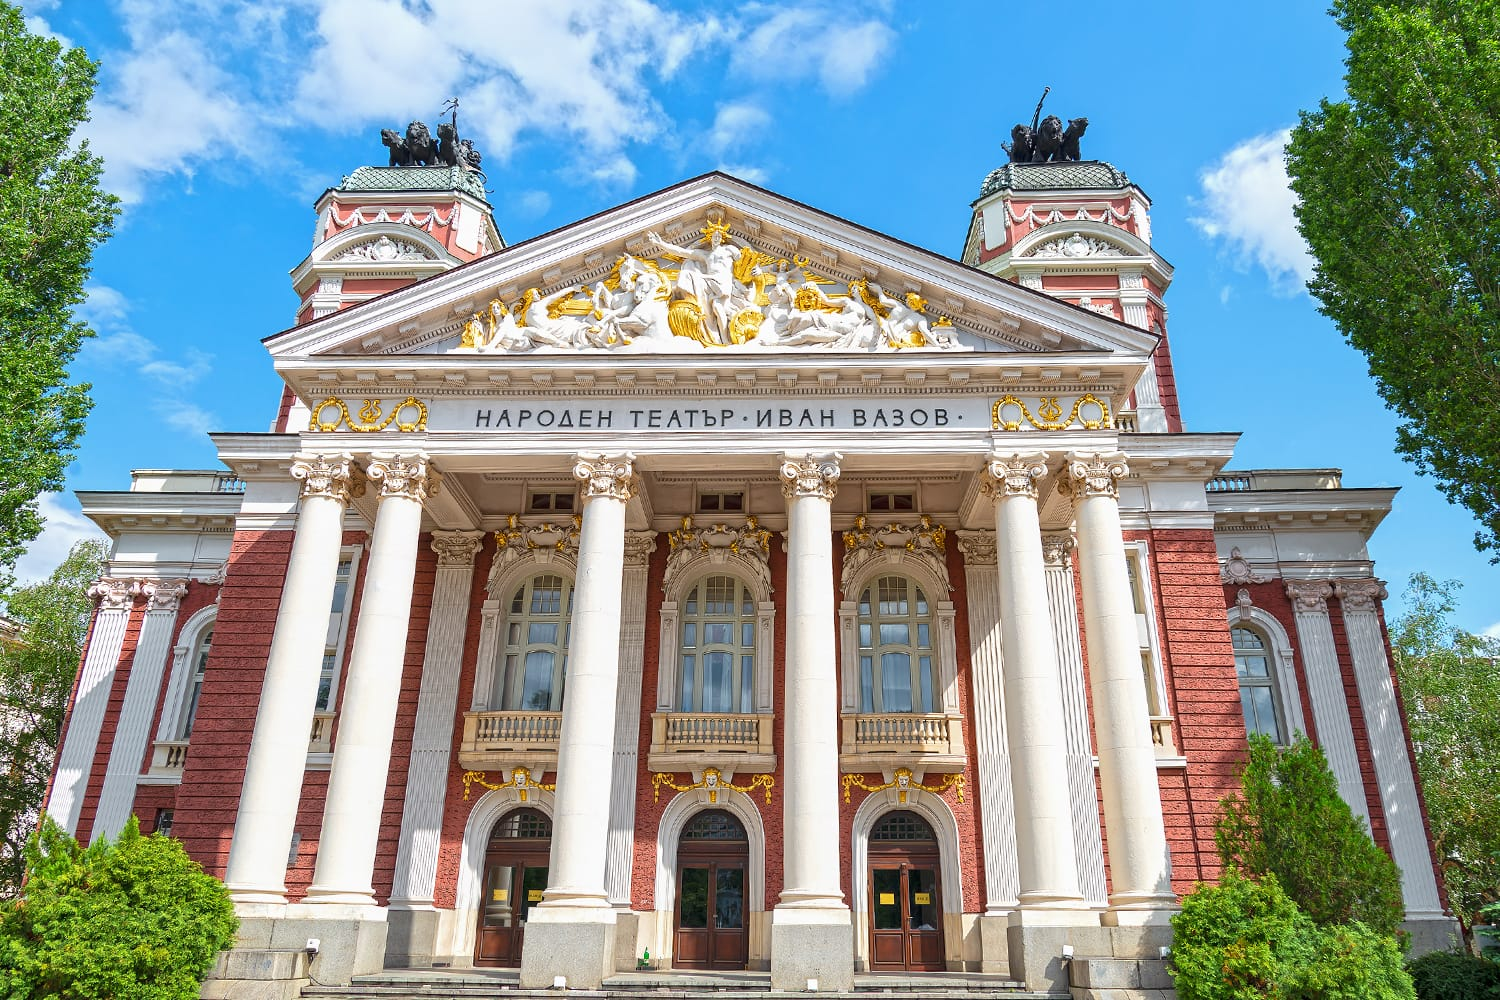 View of the National Theater Ivan Vazov in Sofia, Bulgaria